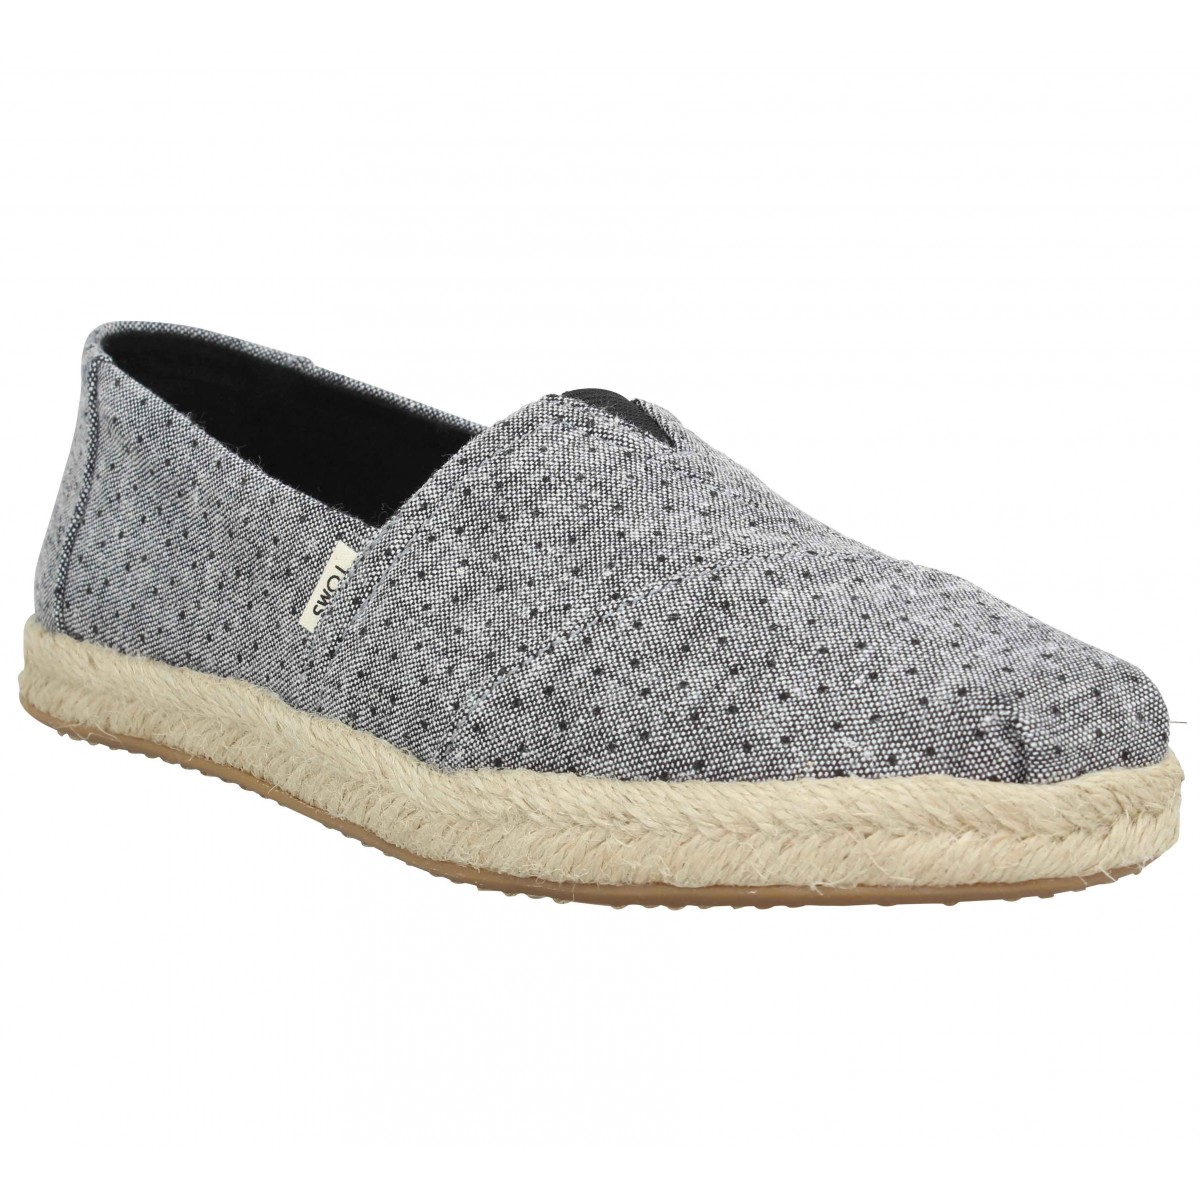 Toms Marque Classic Toile Femme-41-dots